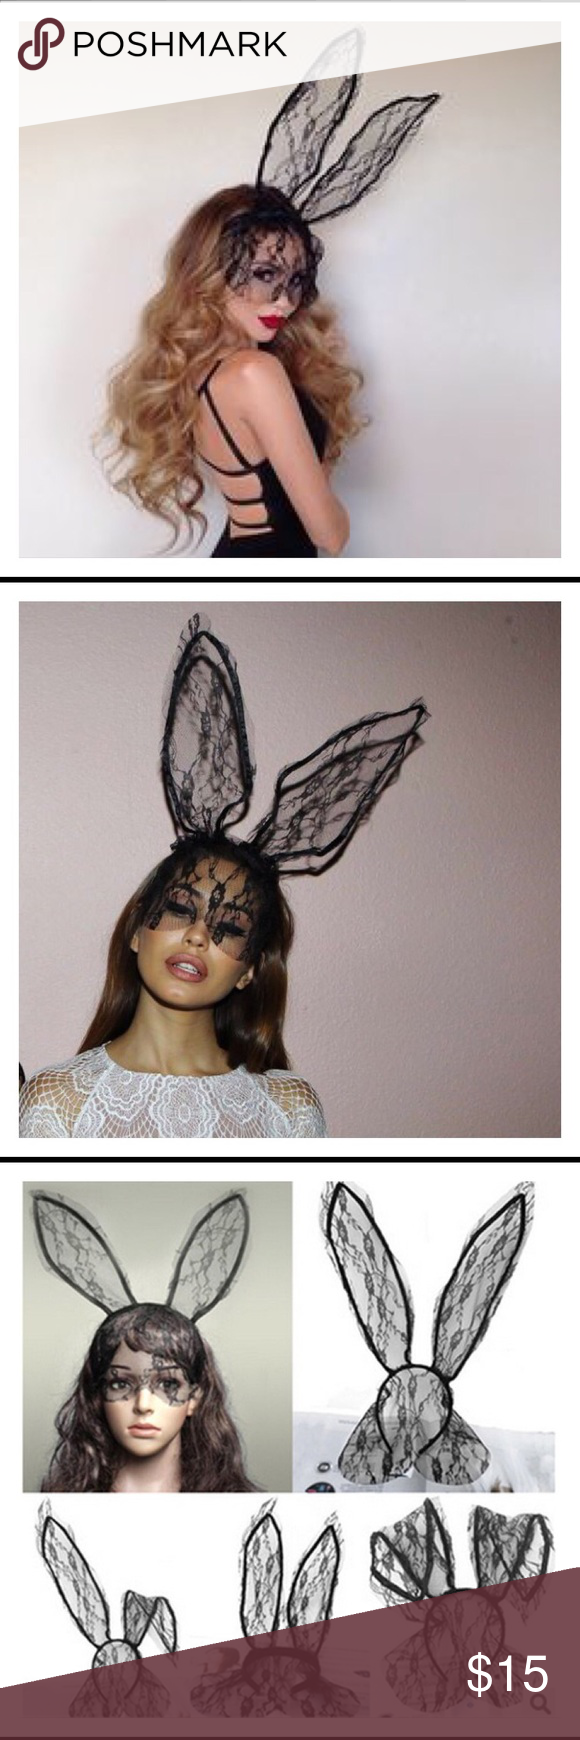 Lace Veiled Bunny Ears Headband in Black Inspired by Ariana Grande, this sexy look creates a sultry allure in or out of the bedroom! New in Packaging Other